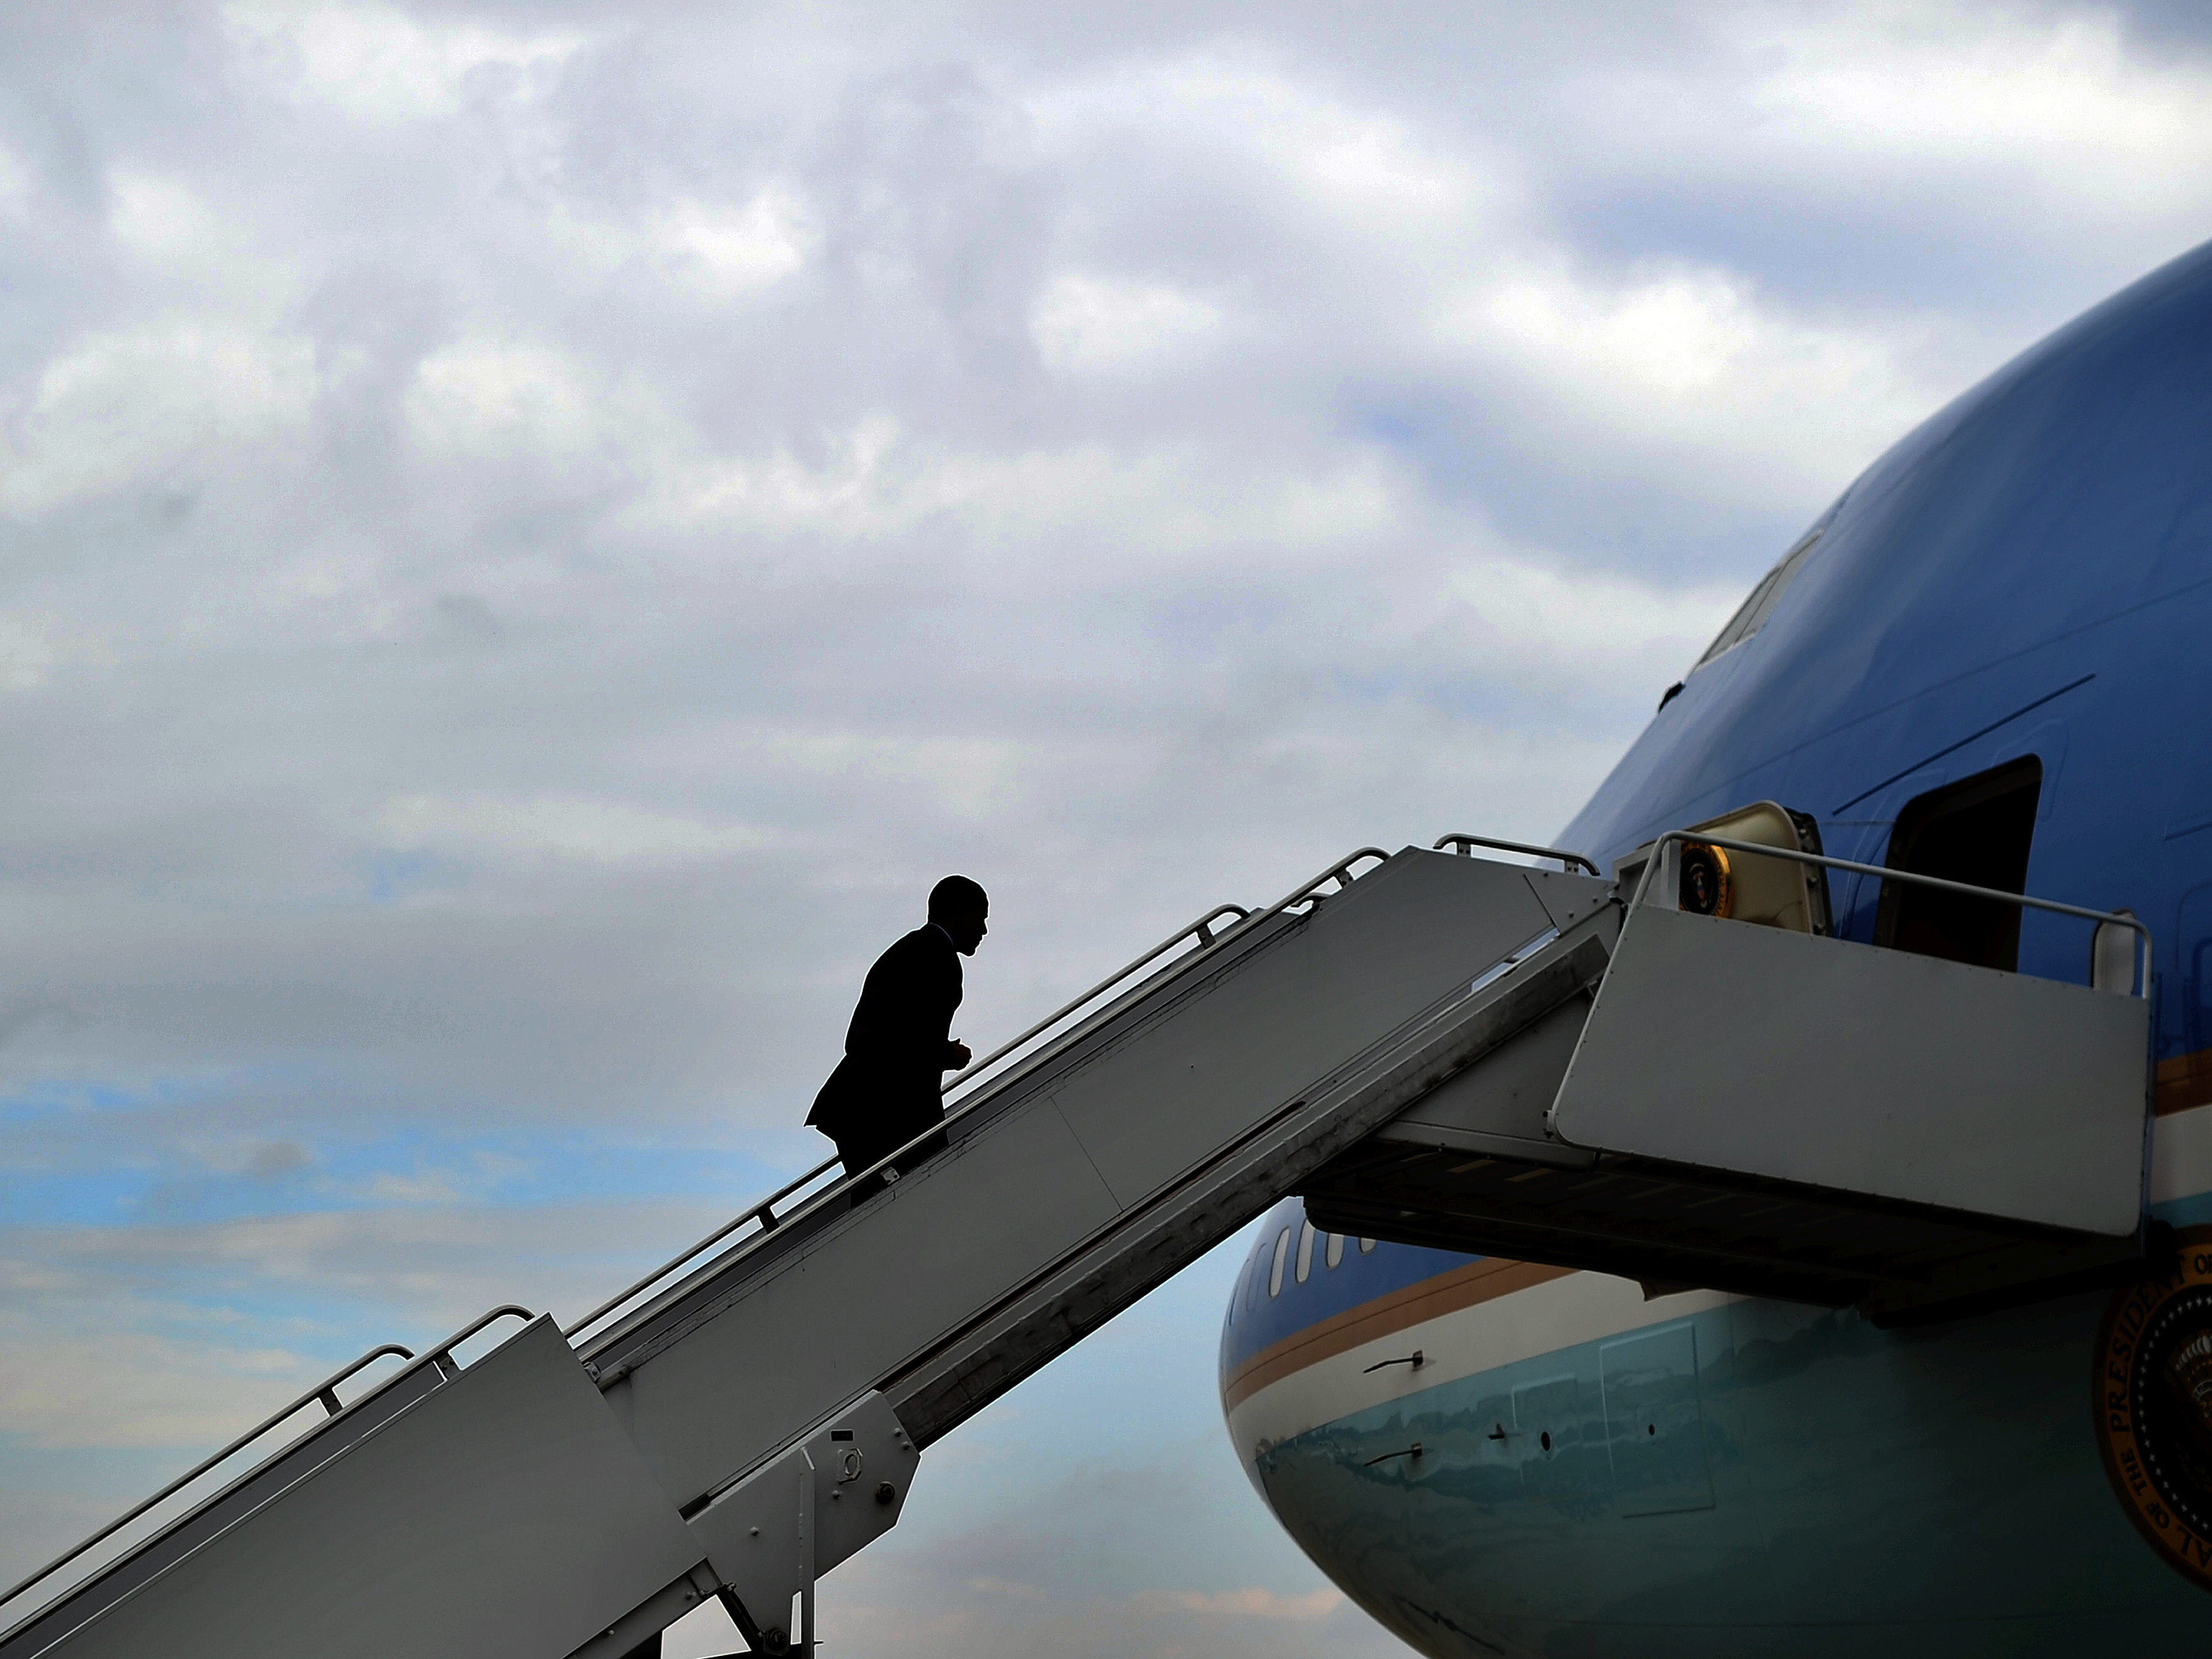 President Barack Obama boards Air Force One at Andrews Air Force Base in Maryland on October 30, 2013. President Obama will complete two terms as president next week. (JEWEL SAMAD/AFP/Getty Images)